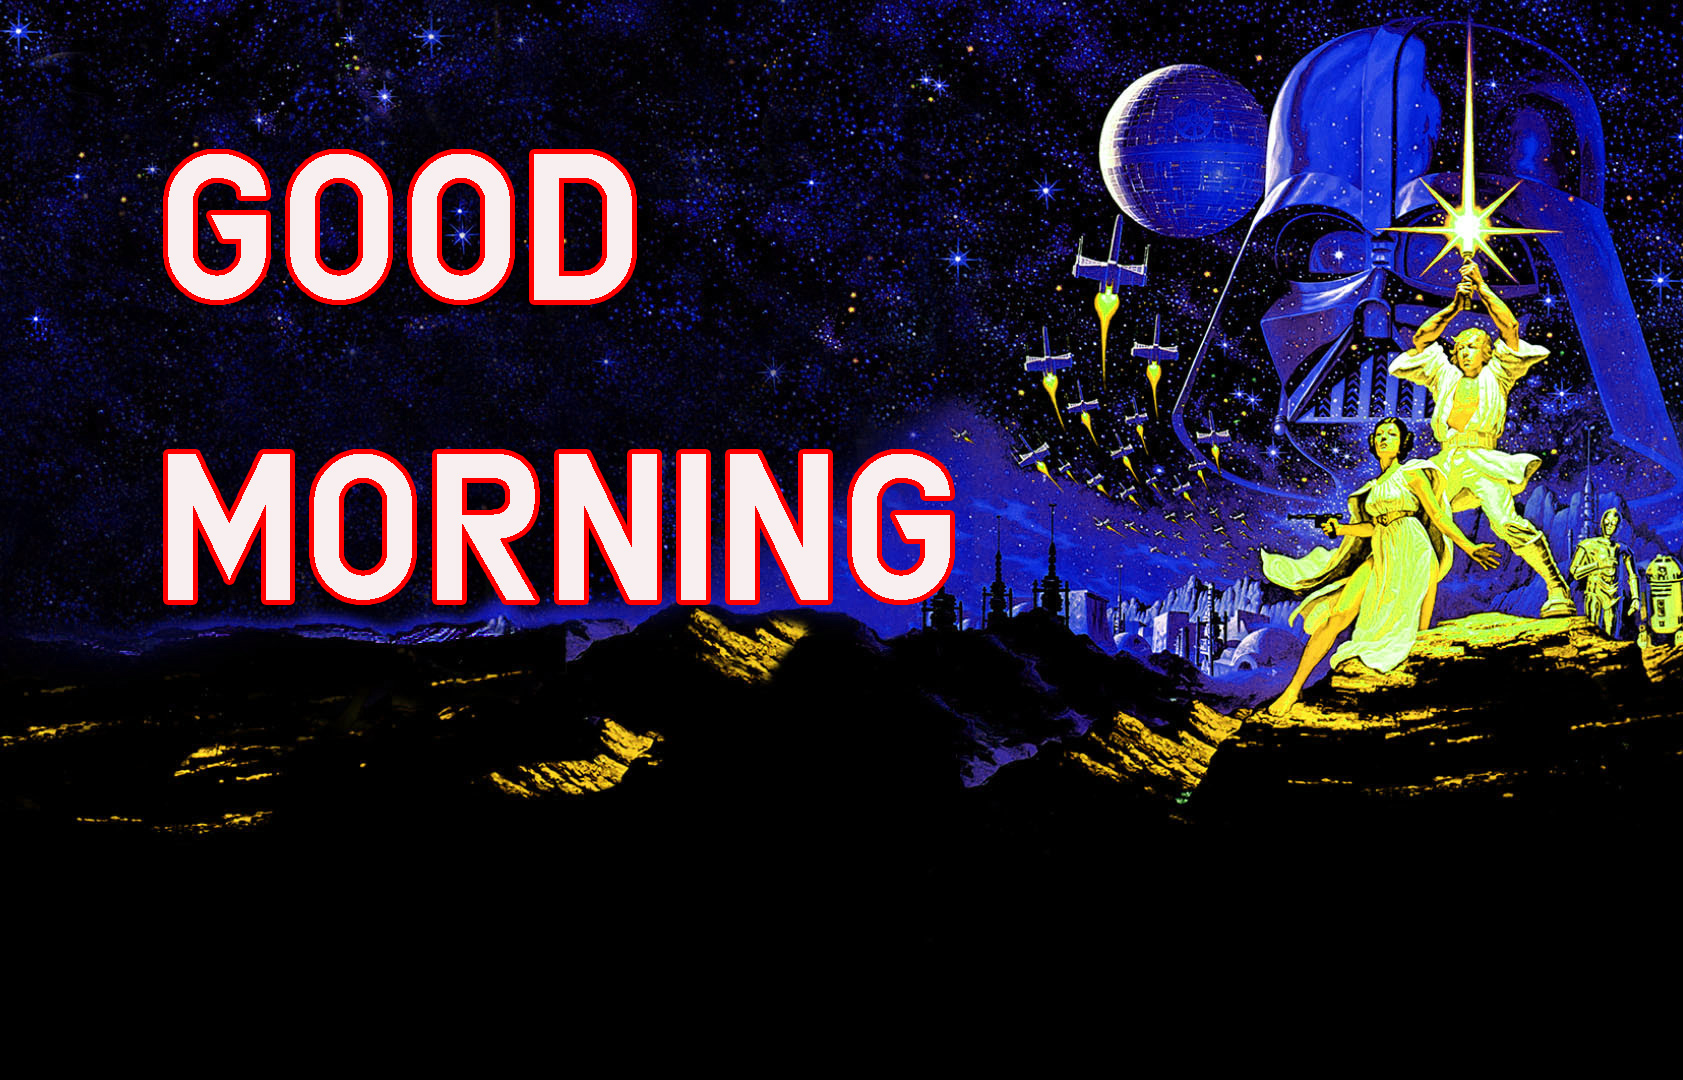 GOOD MORNING IMAGE PHOTO WALLPAPER PICTURES FREE HD DOWNLOAD